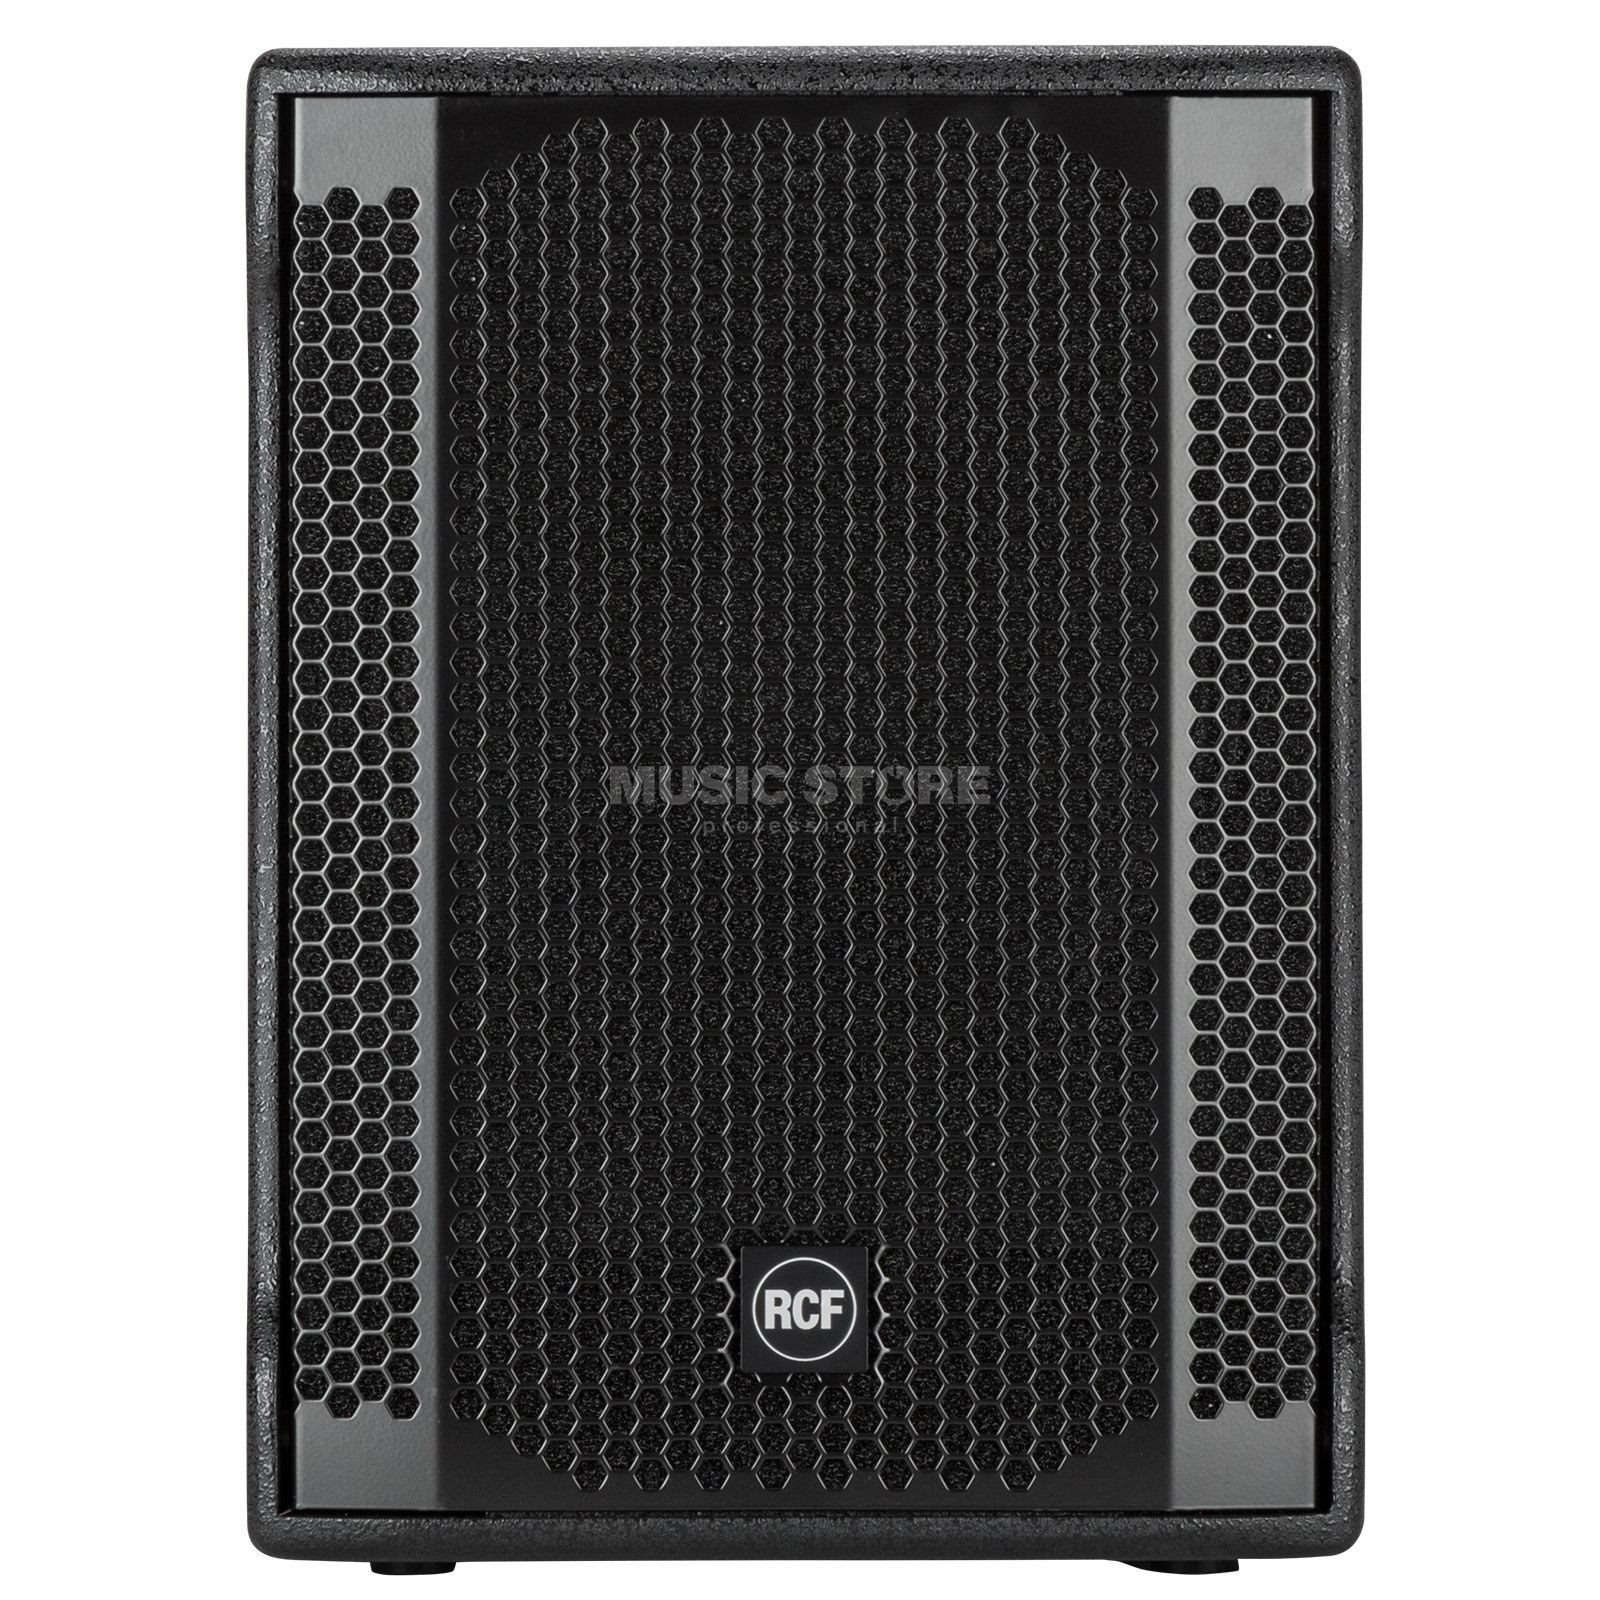 "RCF SUB 702-AS II 12"" Active-Subwoofer, 700 W Produktbild"